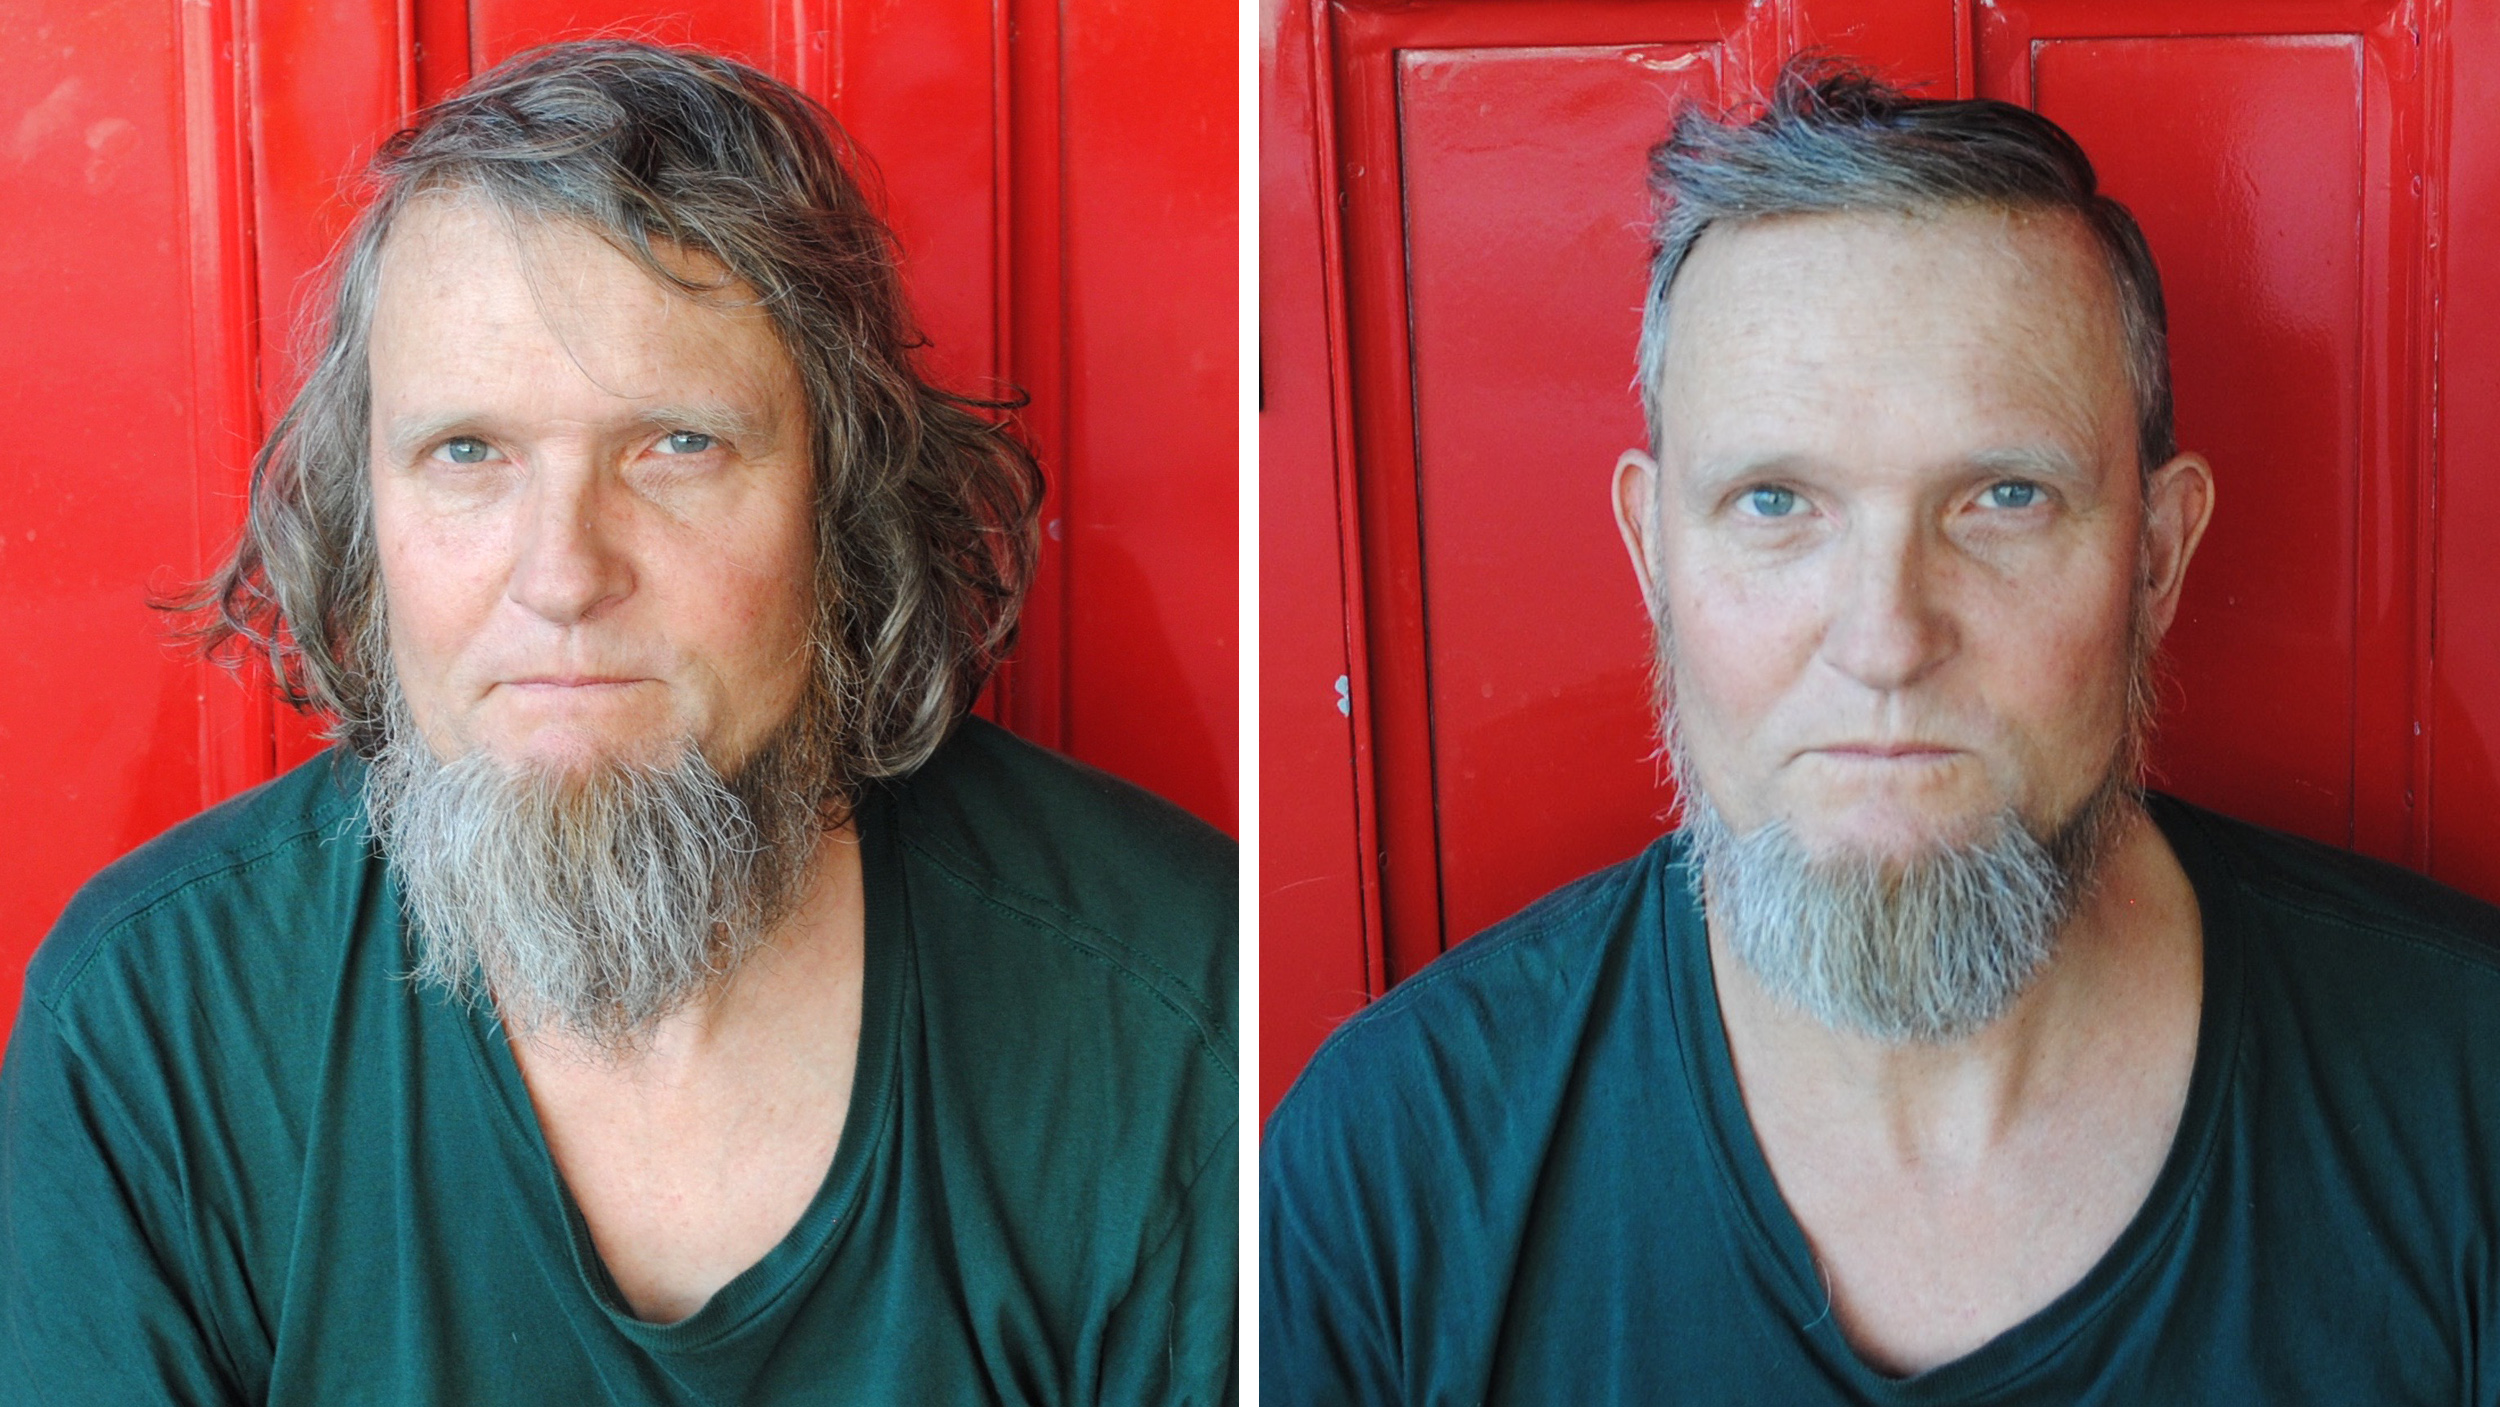 Celebrity hairstylist gives homeless people fresh cuts — and a